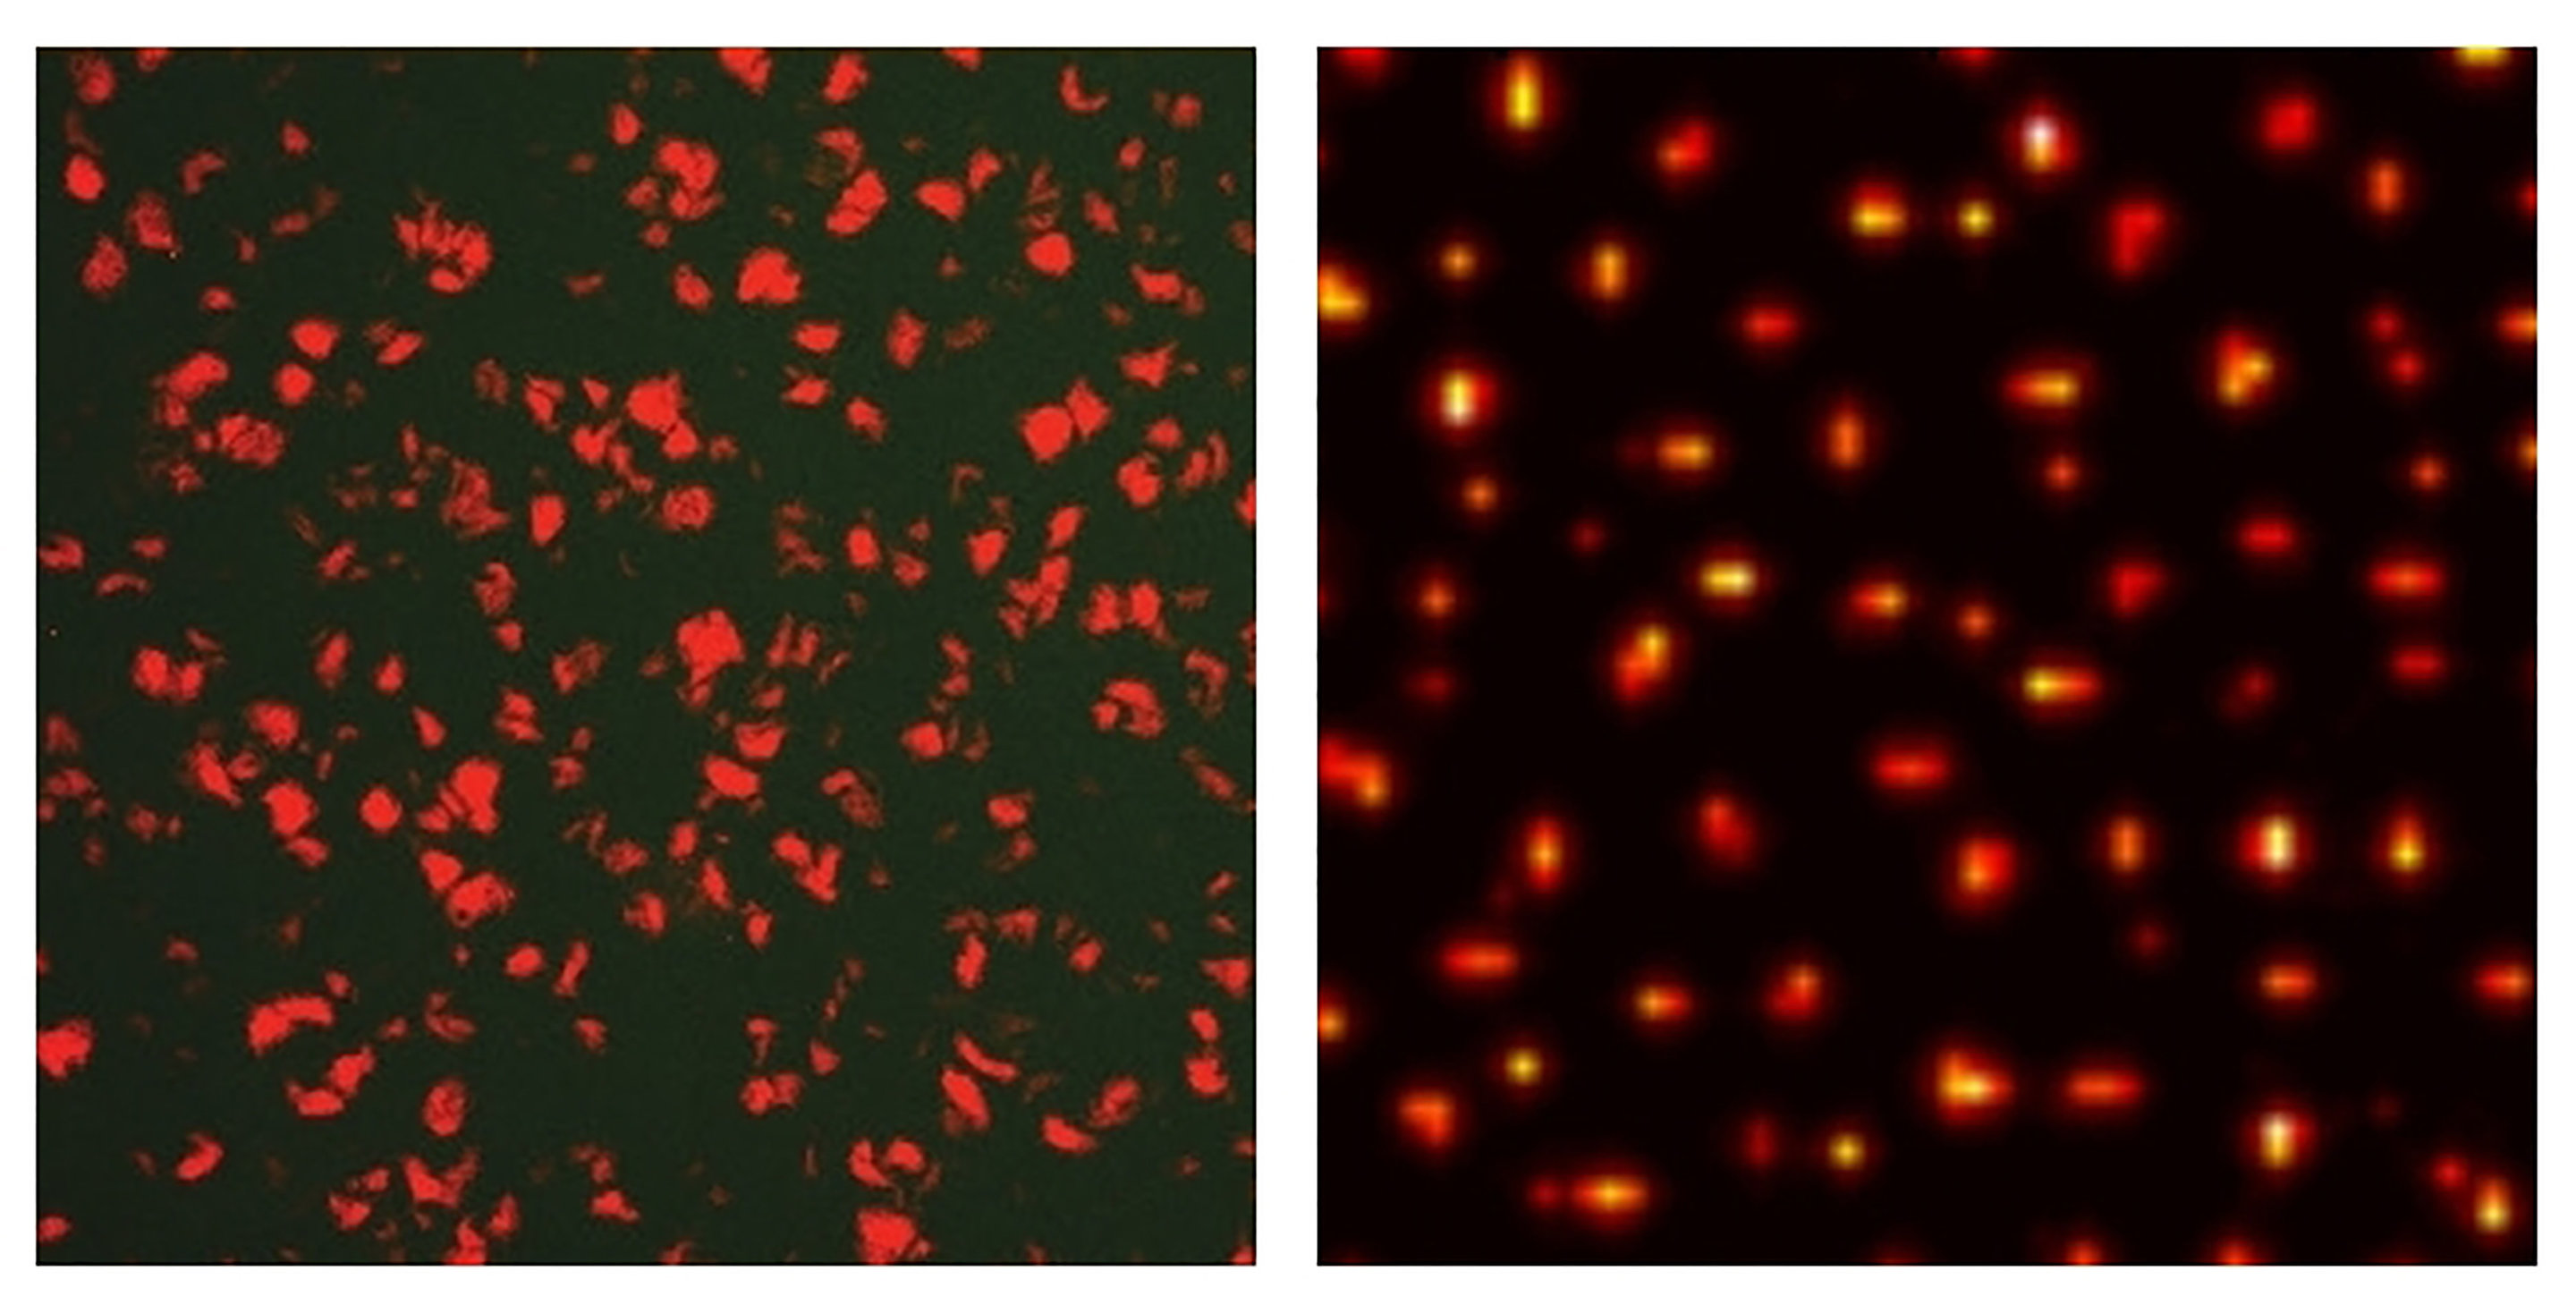 Researchers engineer bacteria to exhibit stochastic Turing patterns